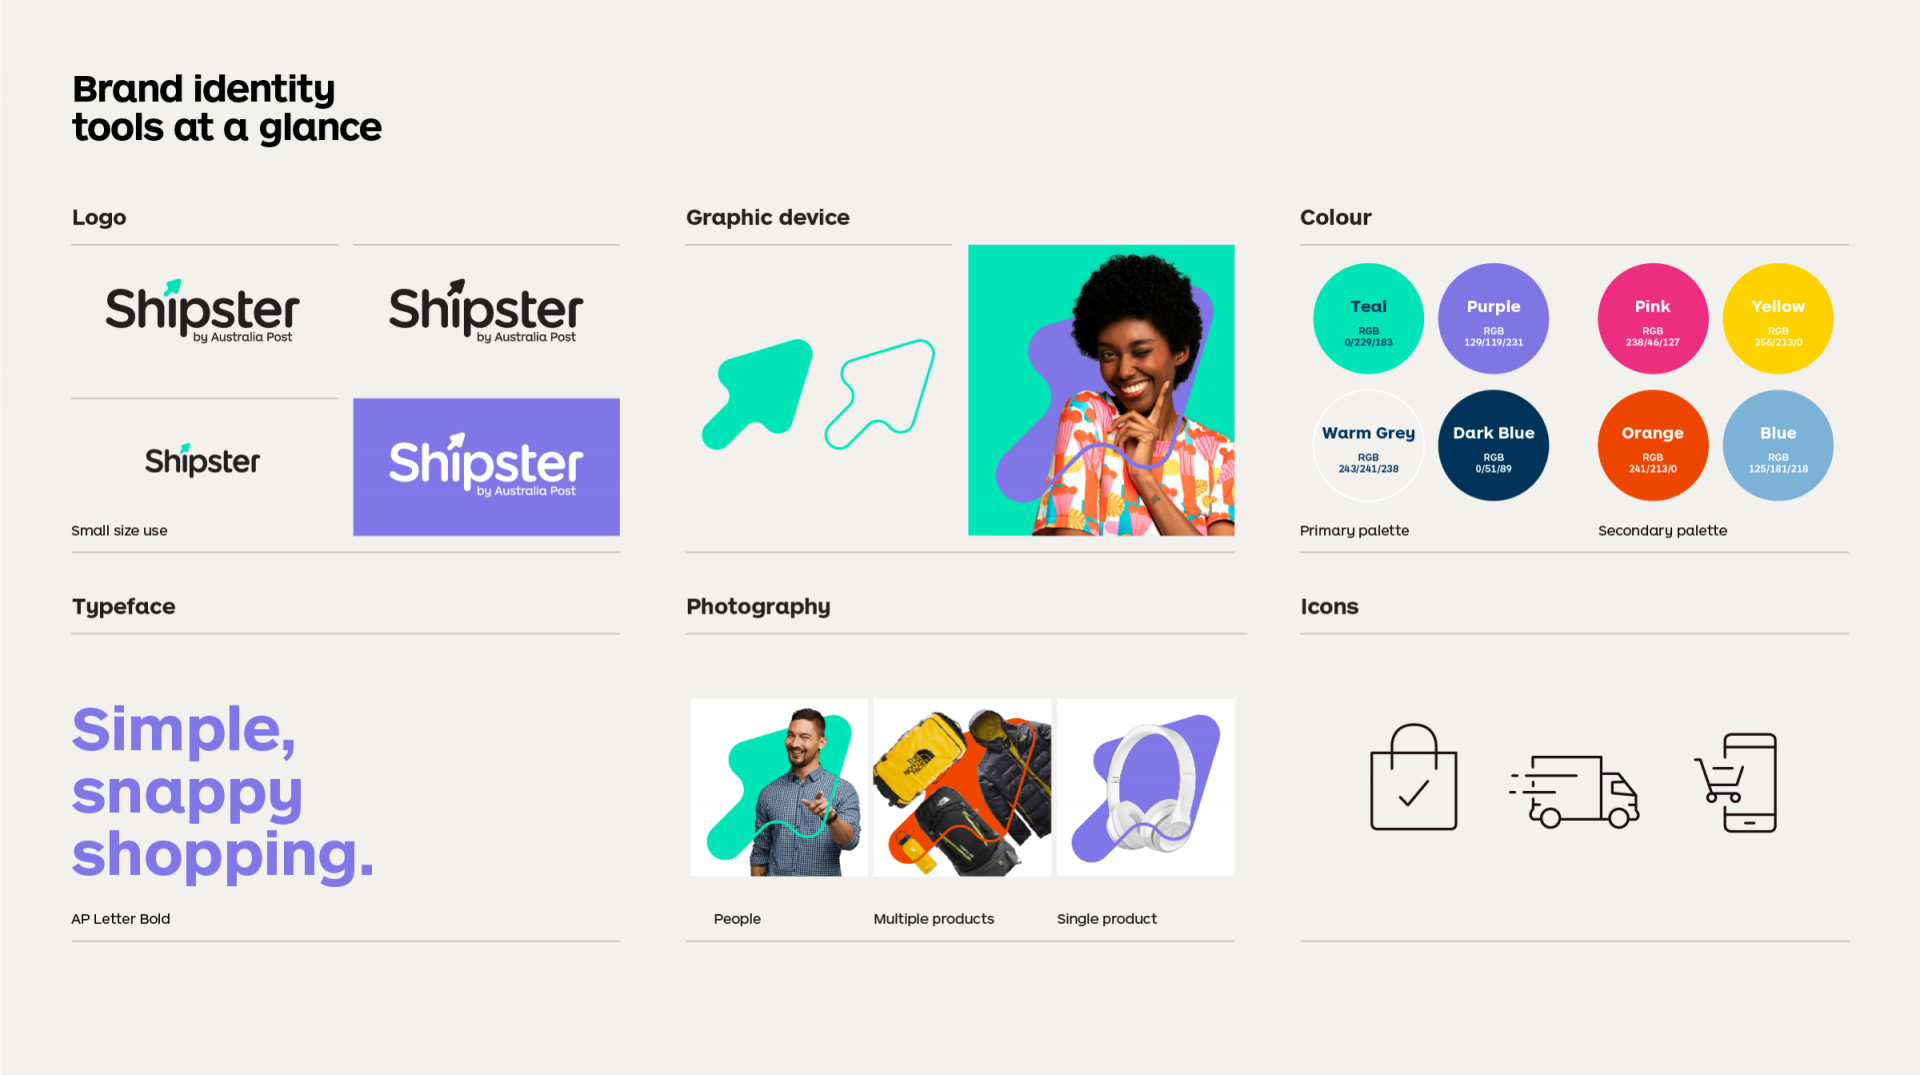 The brand toolkit for Shipster showing the brand's logo, graphic arrow device, it's colours, font, photography and icons